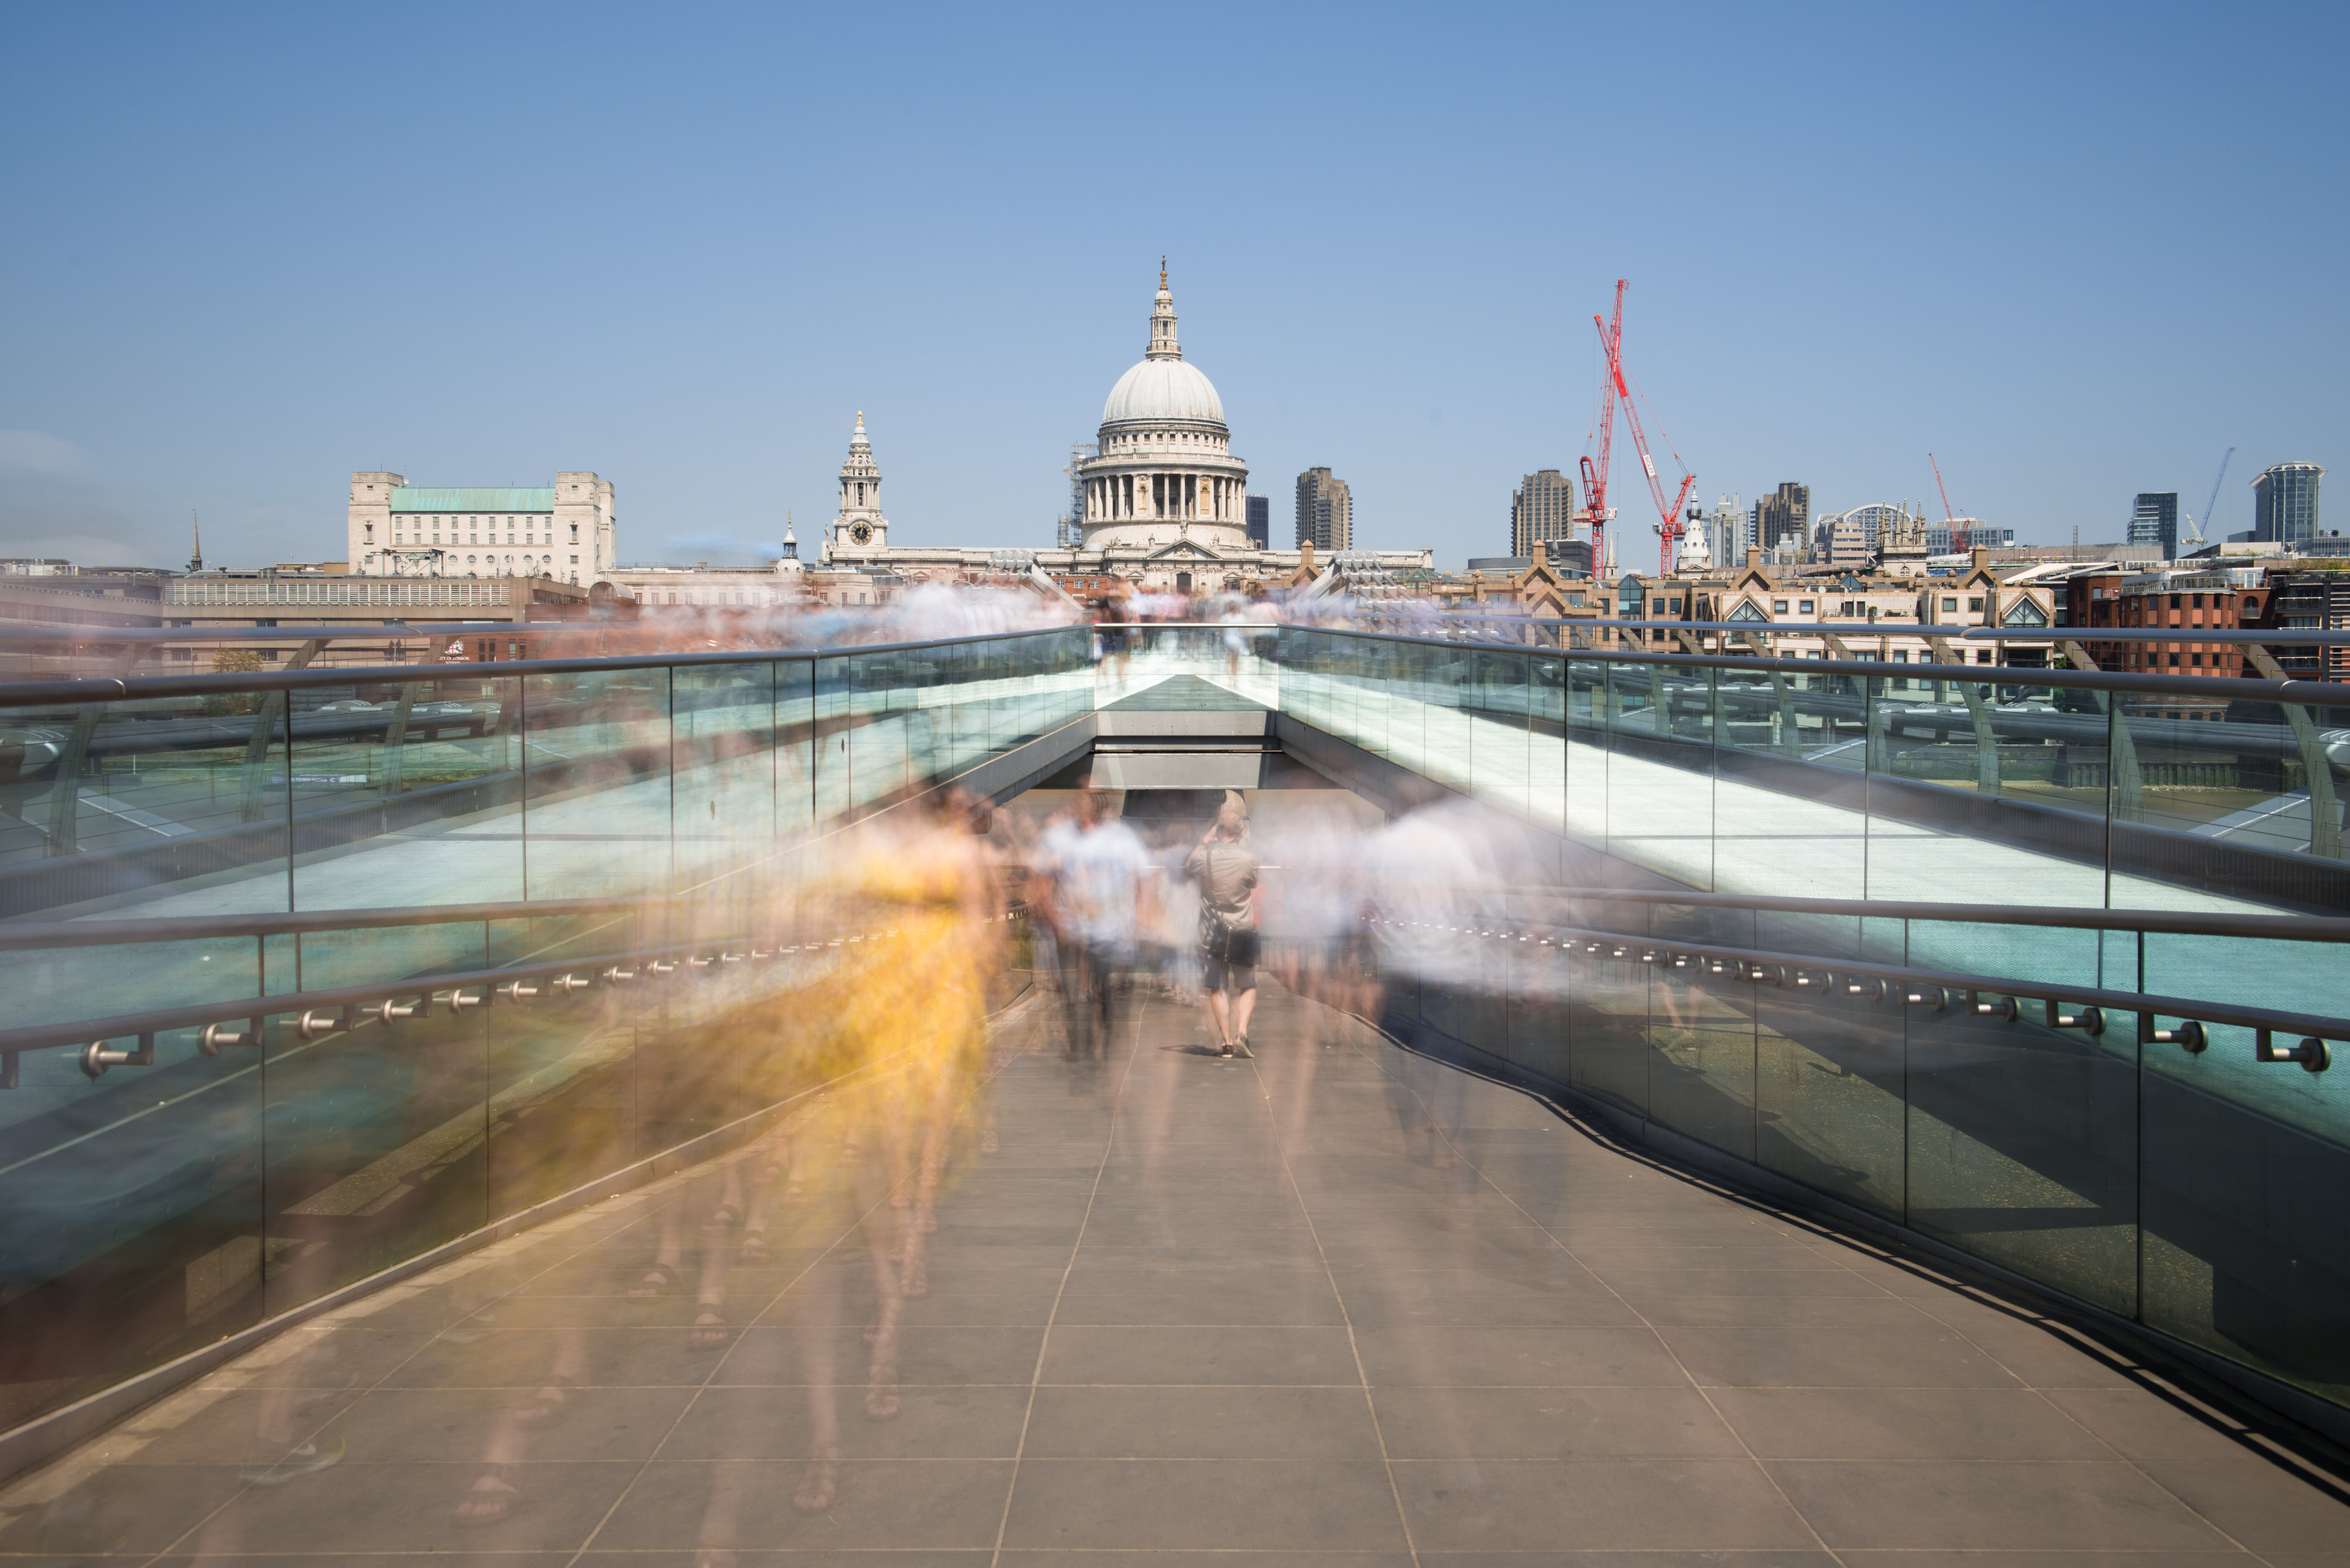 Long-exposure shot of people on the Millennium Bridge with a view on St. Paul's Cathedral